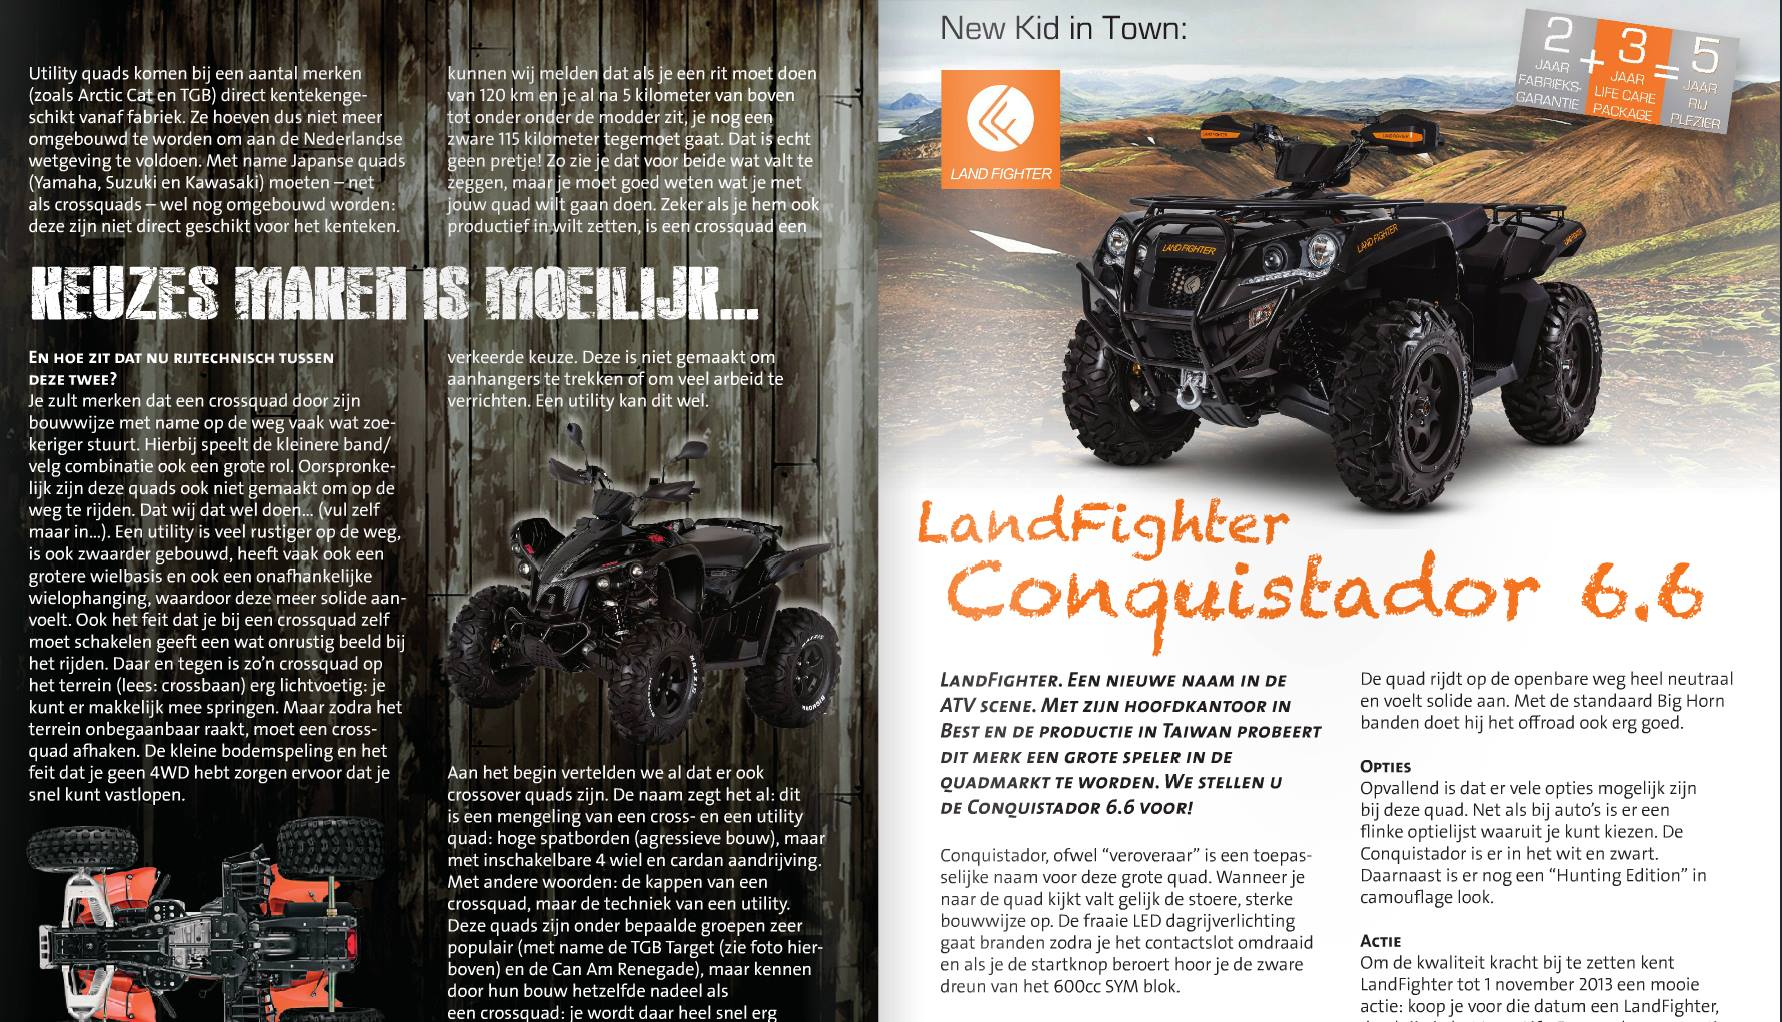 LandFighter_Demolition_5.5_SuperSport_NERO_Conquistador_6.6_quads_quad_atv_utv_ssv_side_by_side_utility_coches_moto_motos_cuatrimoto_cuadrimoto_quadwise_magazine_article_artikel_01